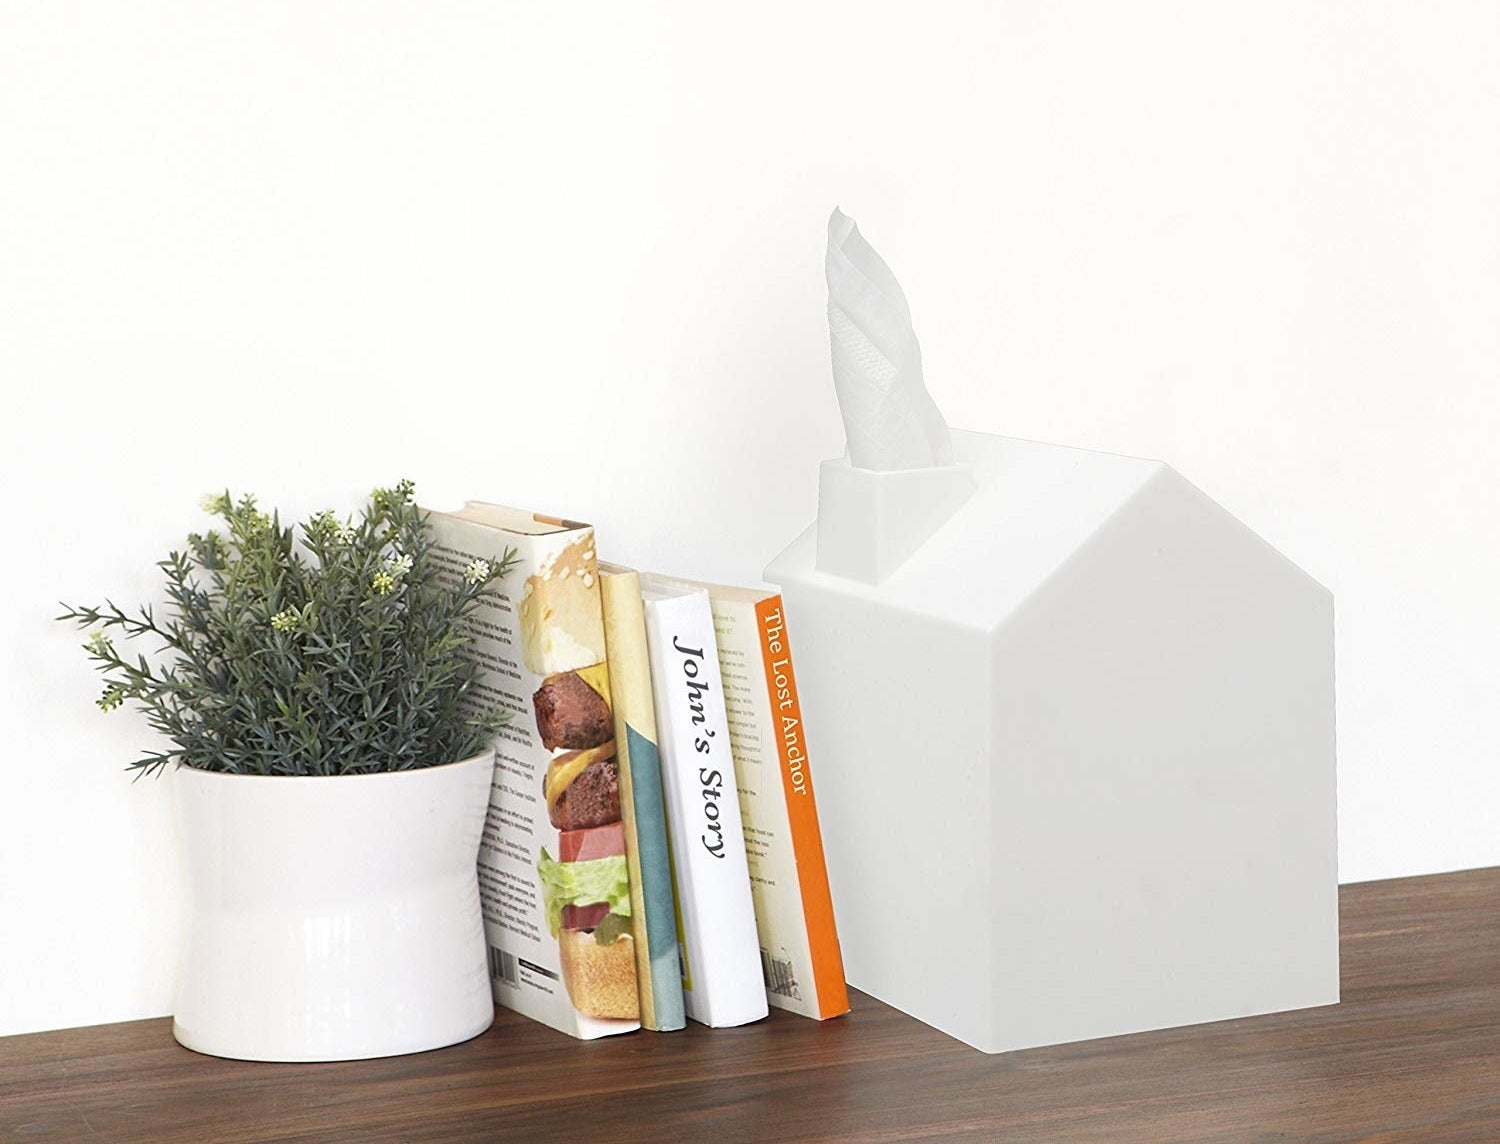 The tissue box cover next to some books and a plant